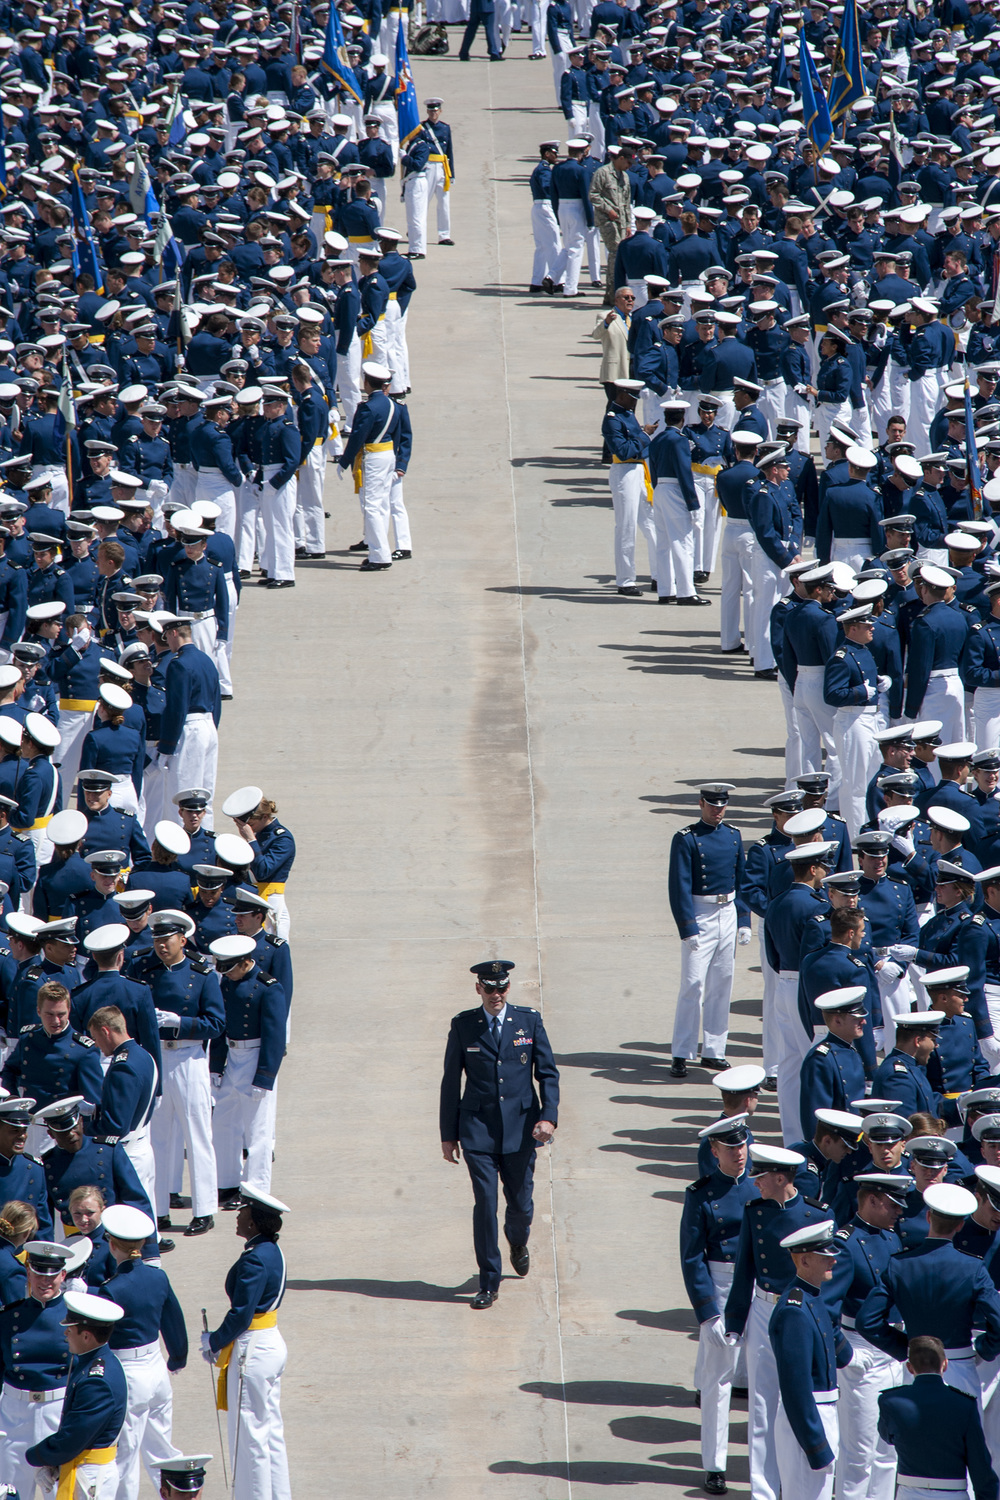 U.S. Air Force Academy cadets prepare to walk in front of their friends and families for the annual Air Force Academy graduation parade held on March 26, 2015, inin Colorado Springs, Colorado. The parade is the last parade for Firsties before they graduate and change of command to second classmen is accomplished.